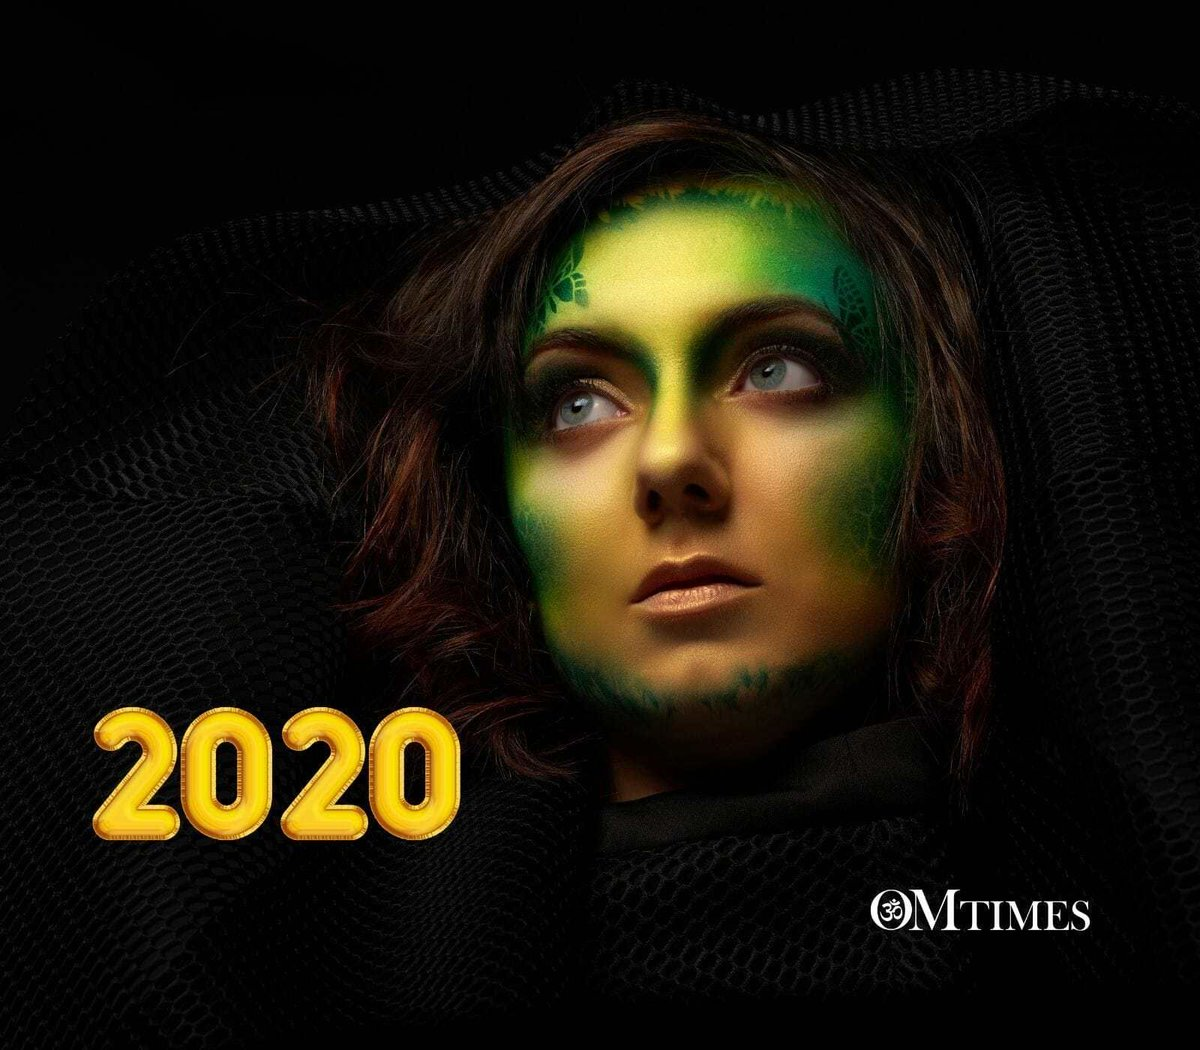 Is 2020 A Collective Dark Night of the Soul? https://t.co/lrpYImKSiI #2020 #collective #soul #humanity https://t.co/CQZXnZw2U8